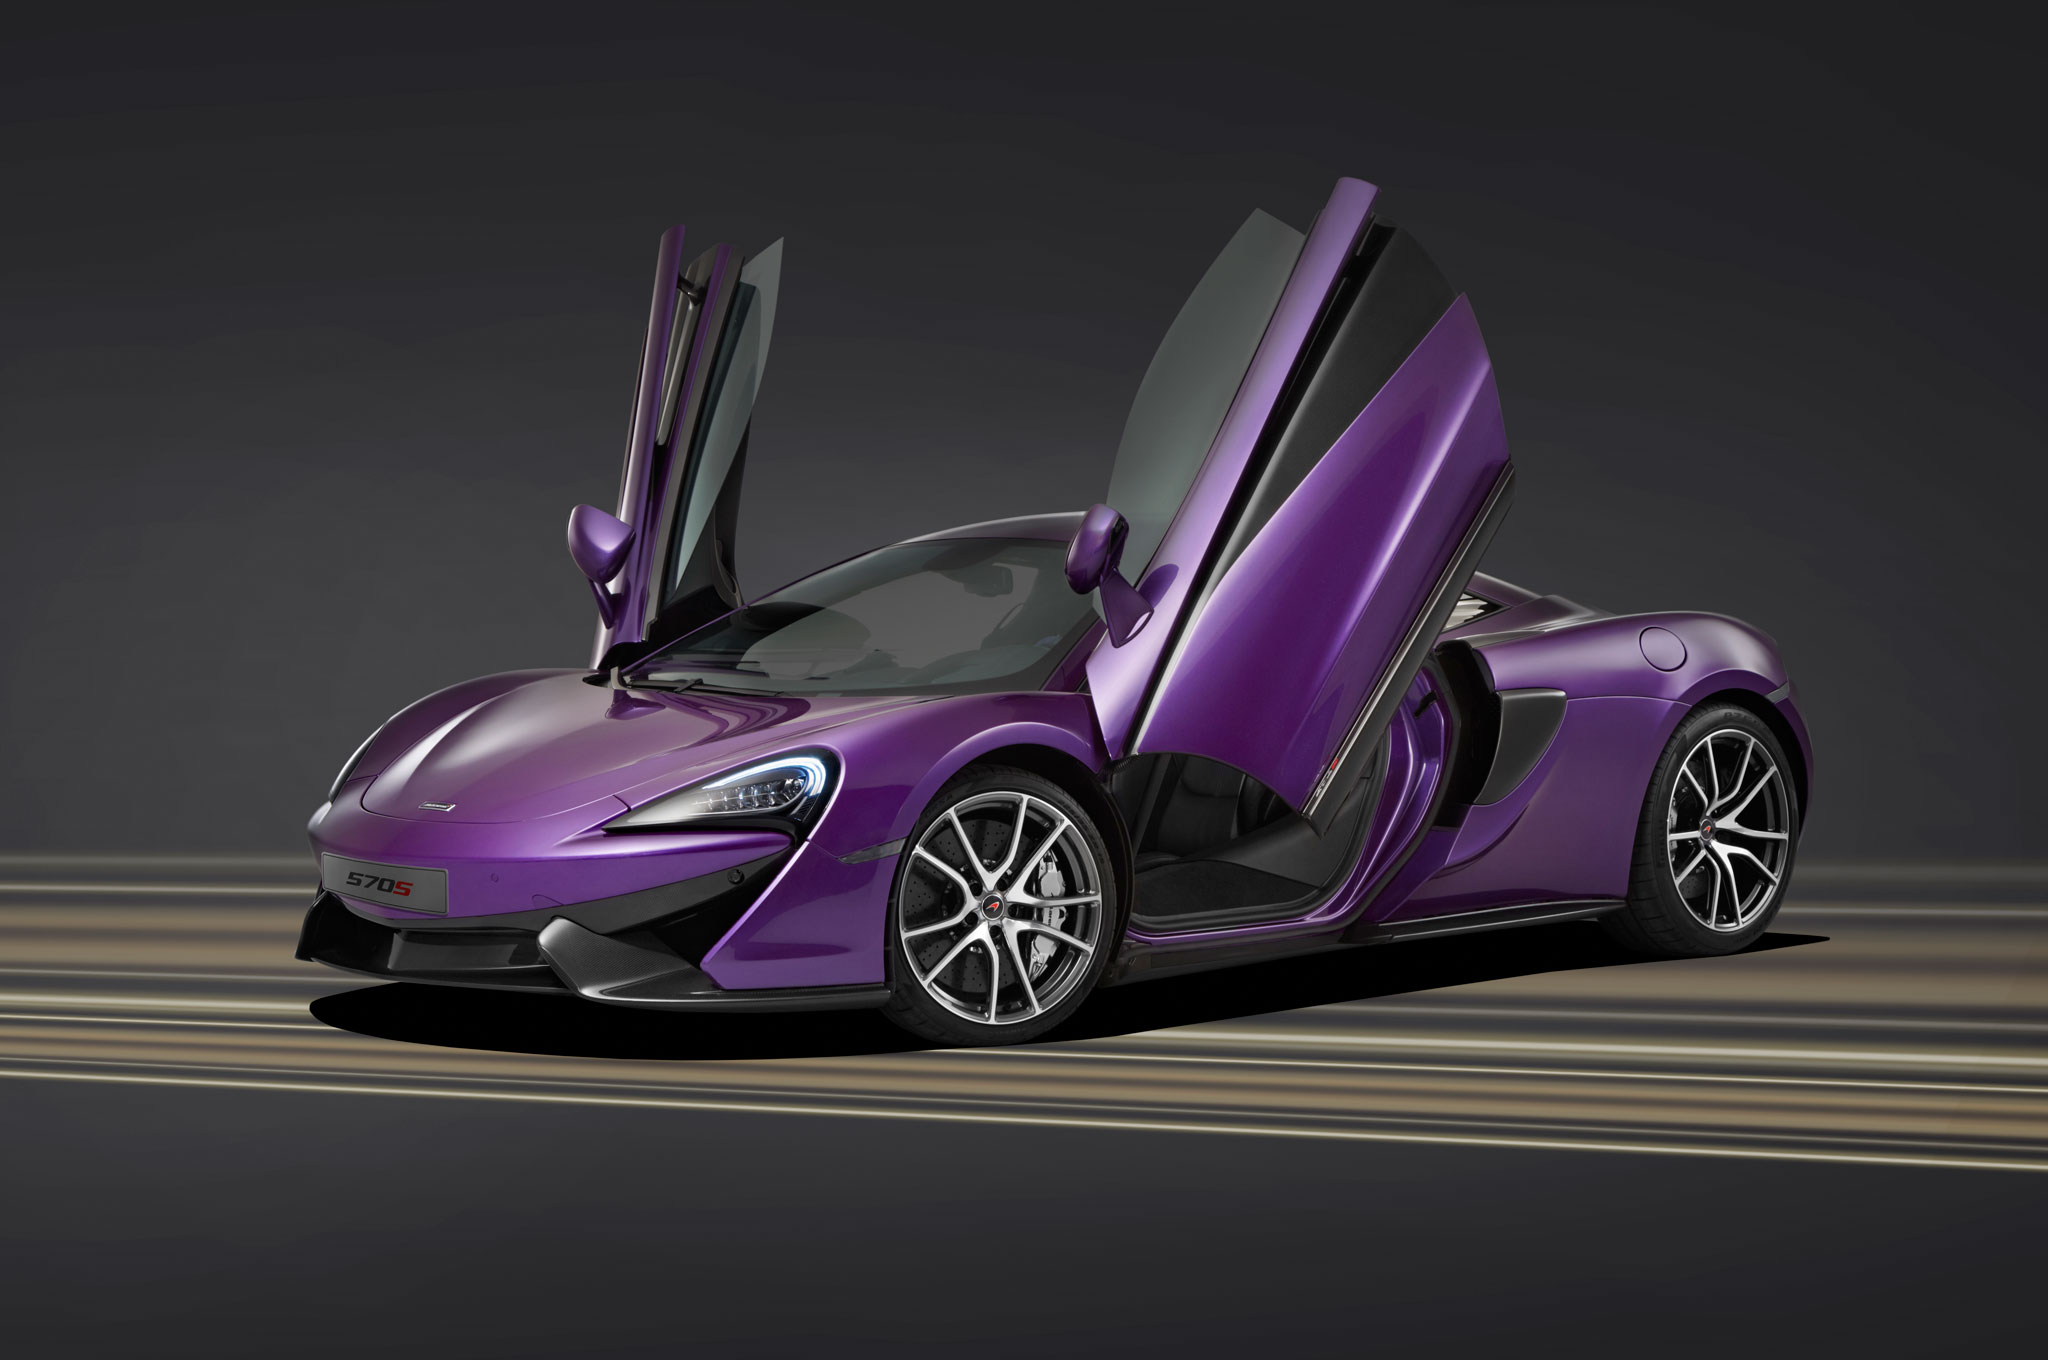 http://st.automobilemag.com/uploads/sites/11/2015/08/McLaren-570S-Coupe-by-MSO-front-three-quarter-with-doors-open.jpg